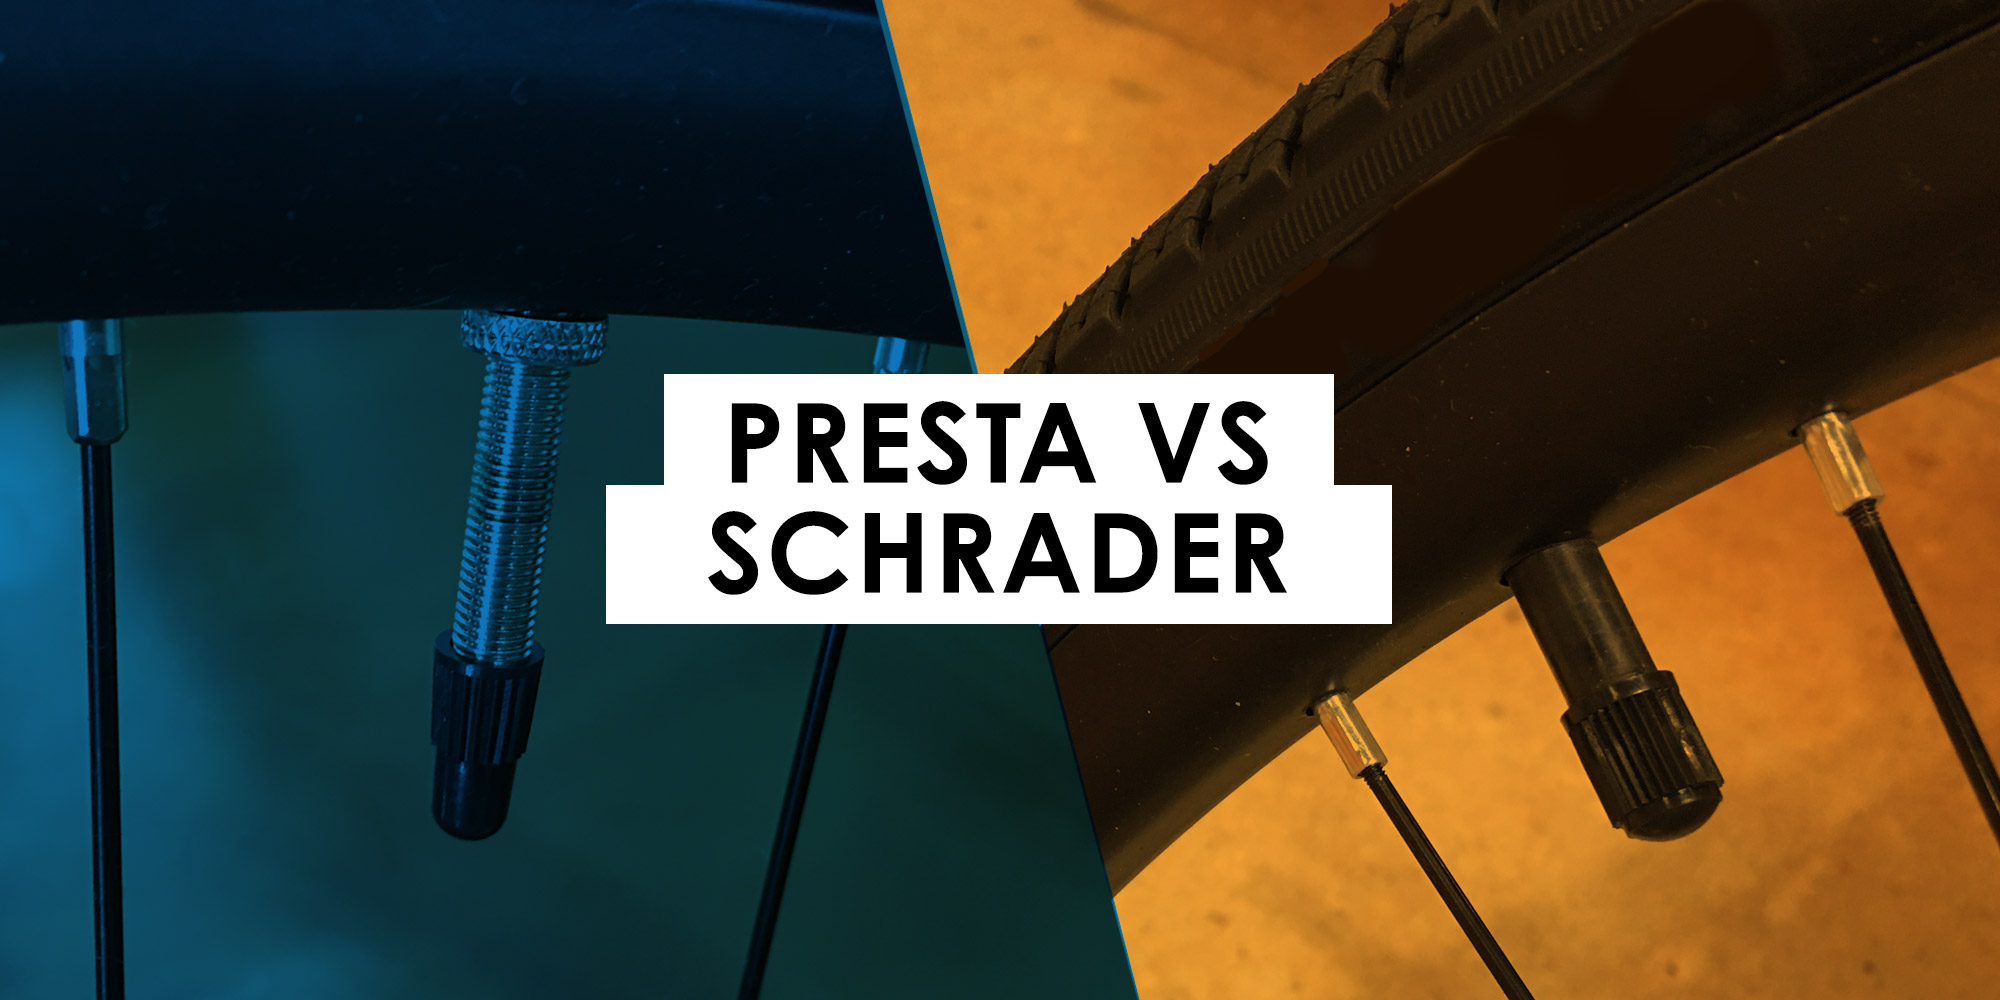 Learn the difference between a Presta vs a Schrader Valve